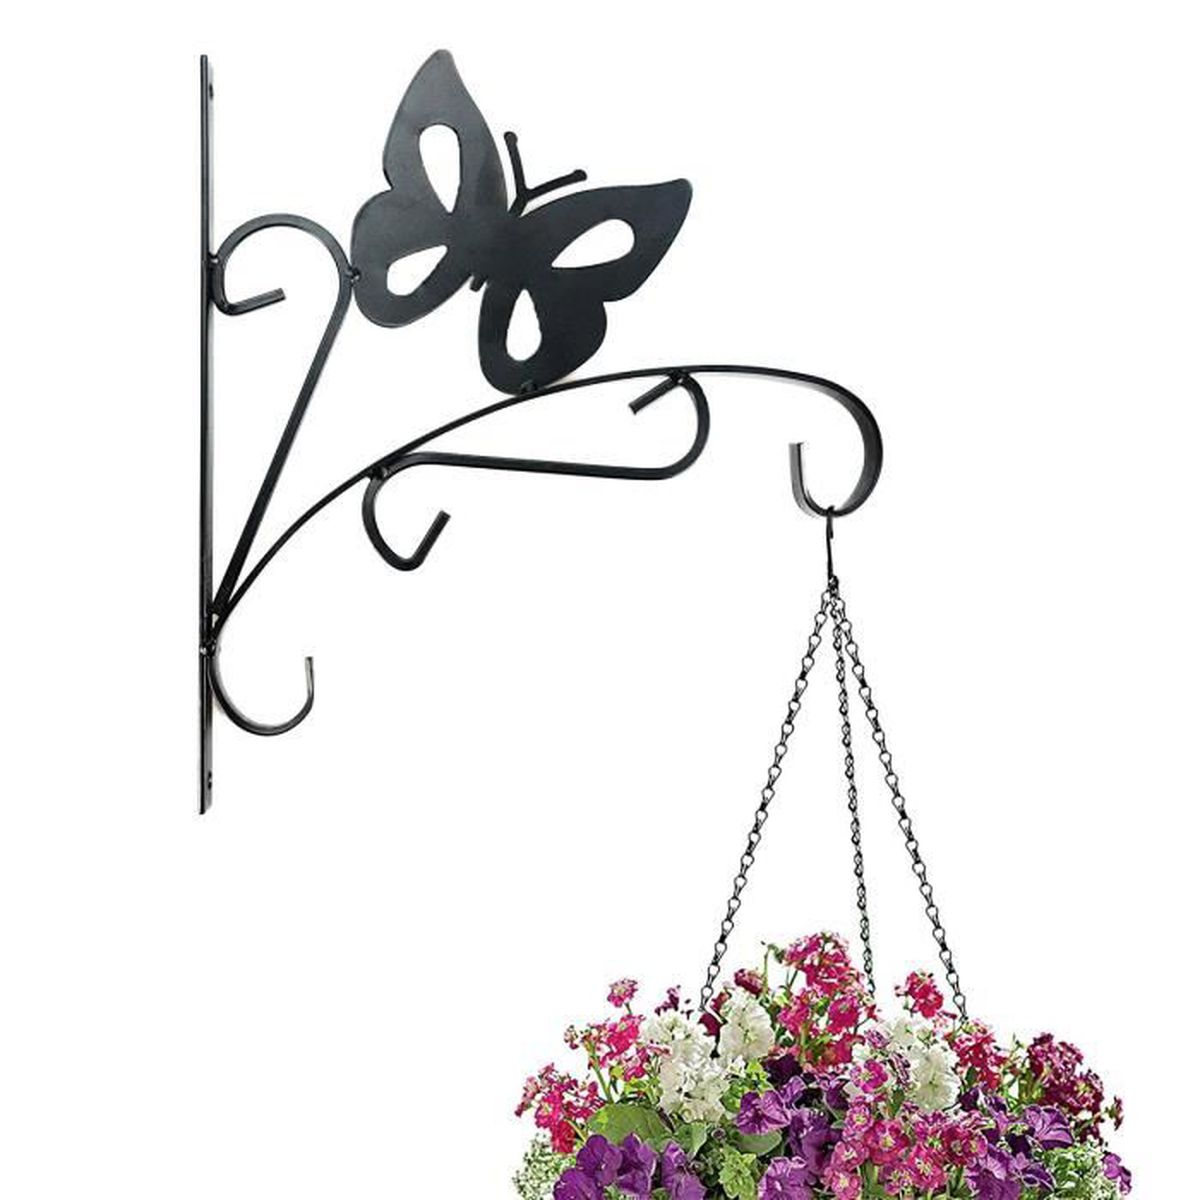 suspension murale crochet plante - pot de fleur suspendu - papillon